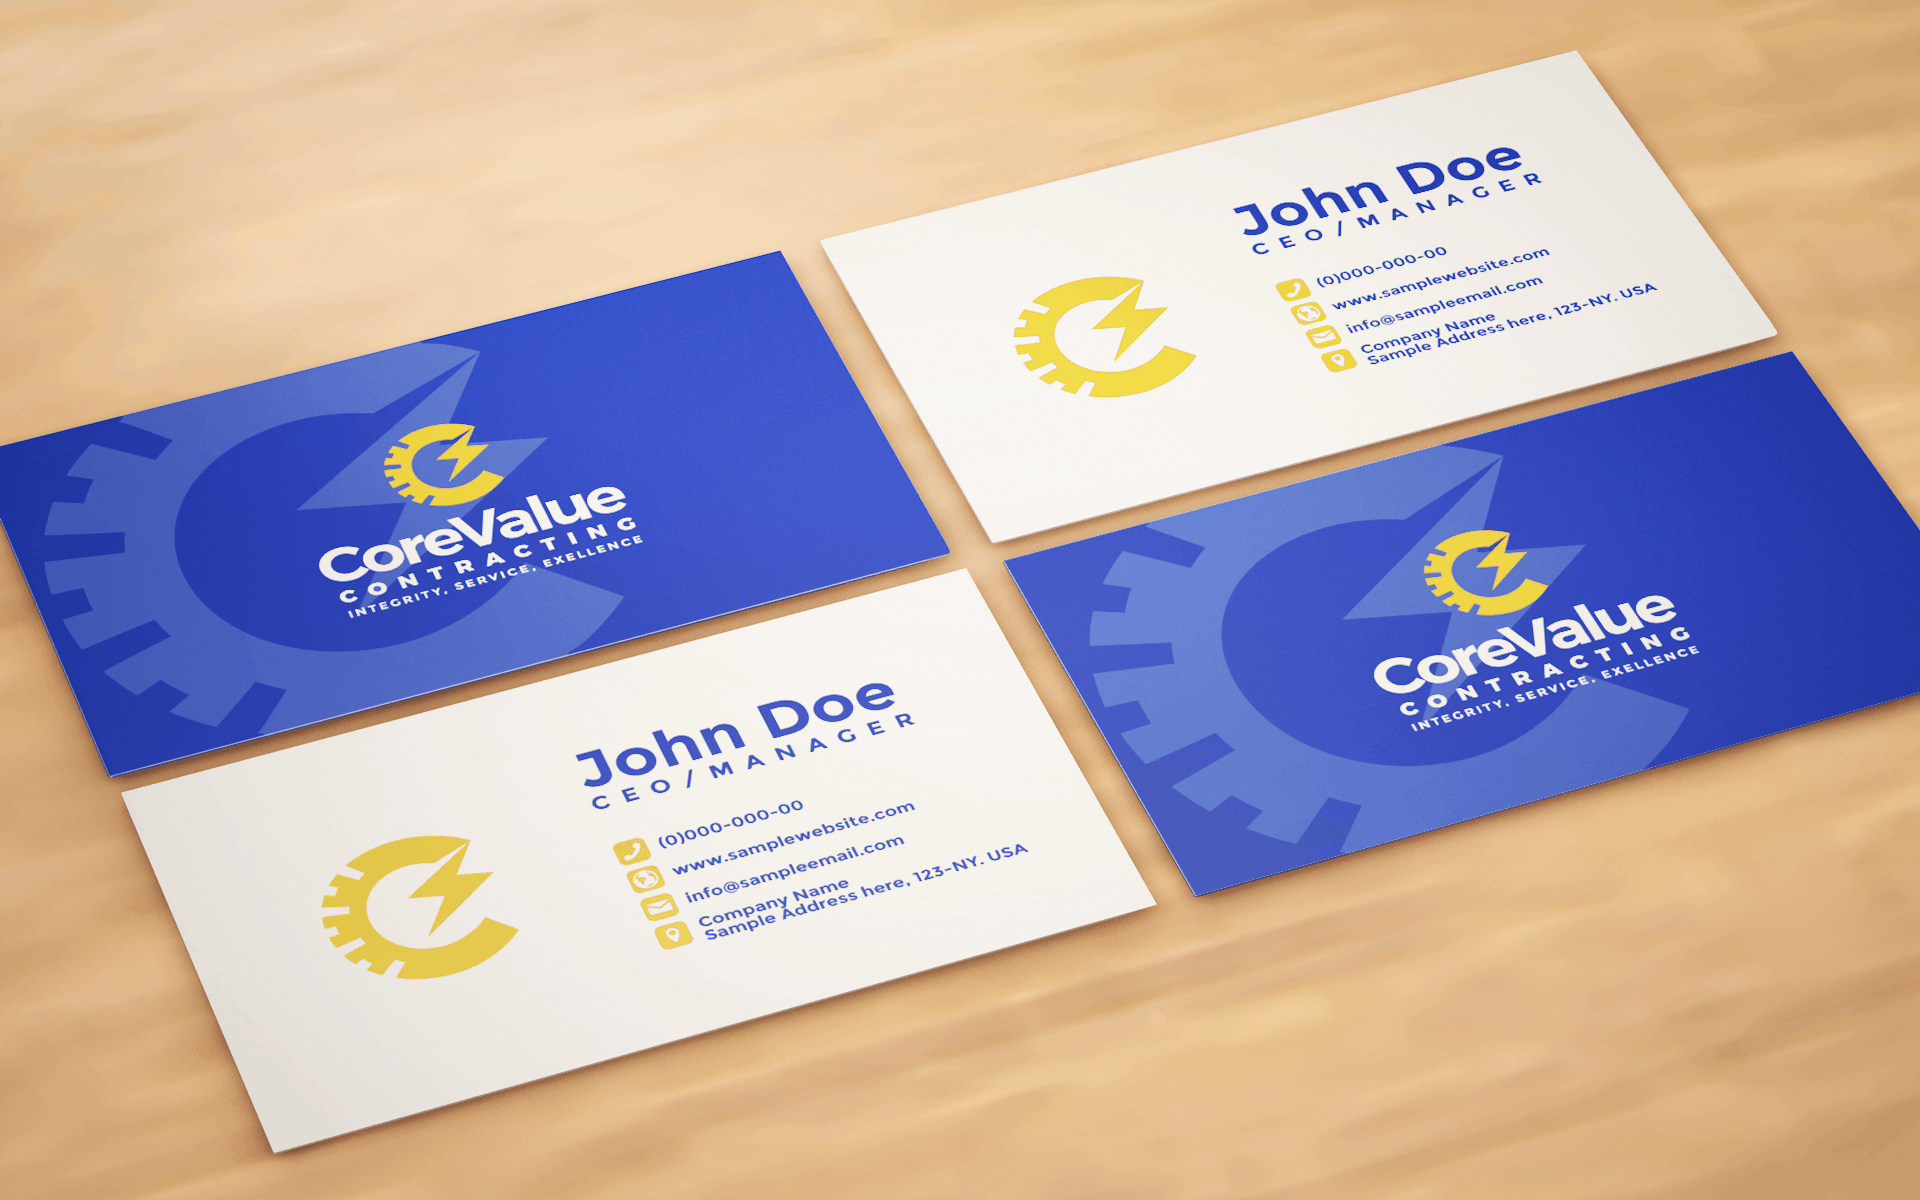 CORE VALUE CONTRACTING BUSINESS CARD